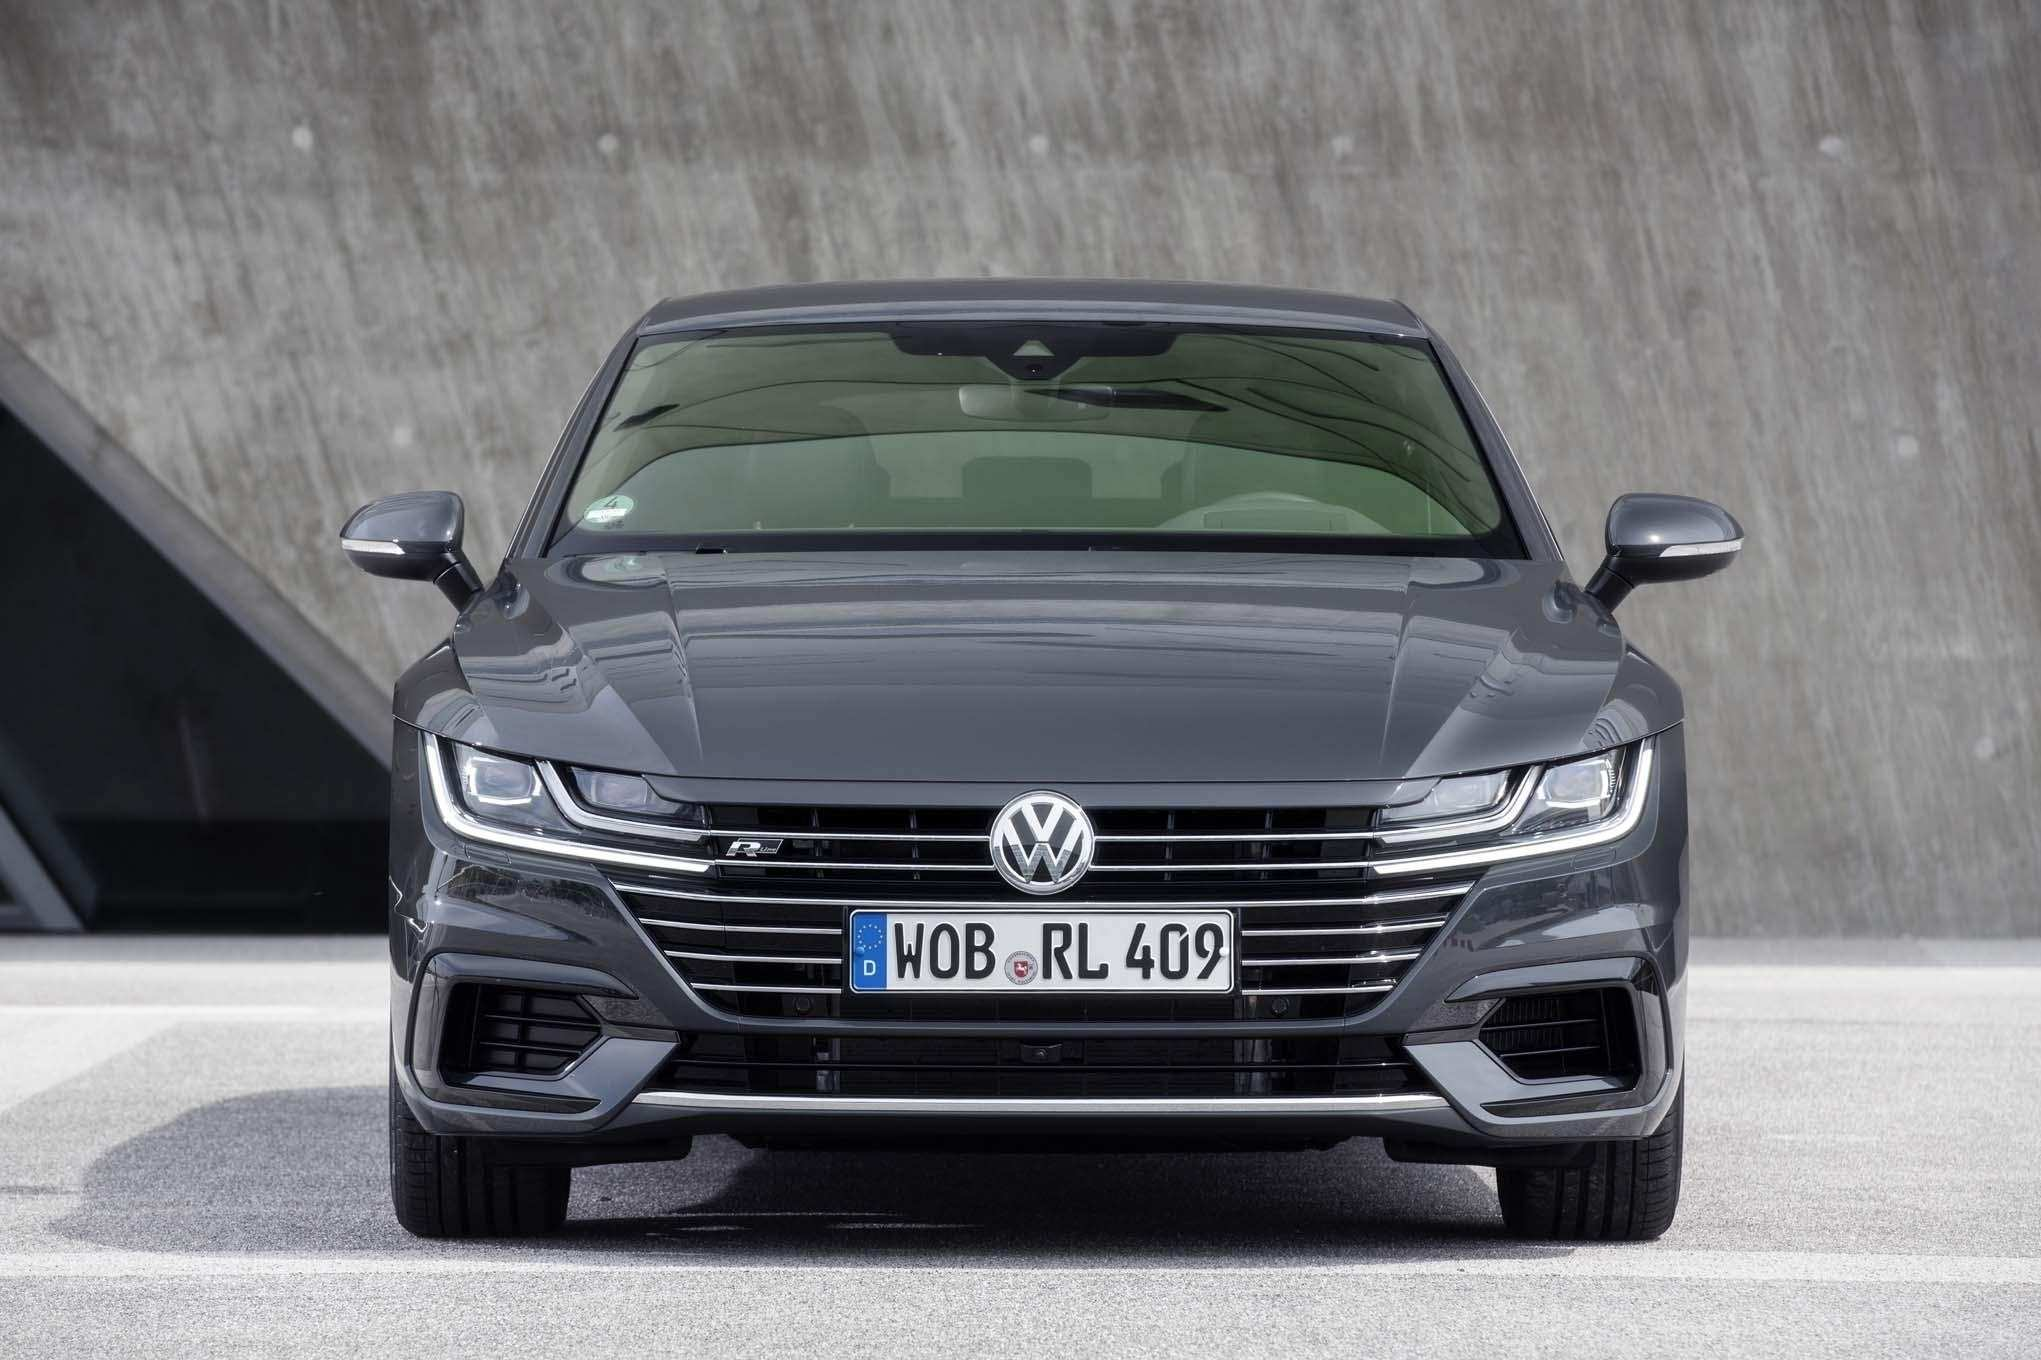 81 All New Next Generation Vw Cc Price